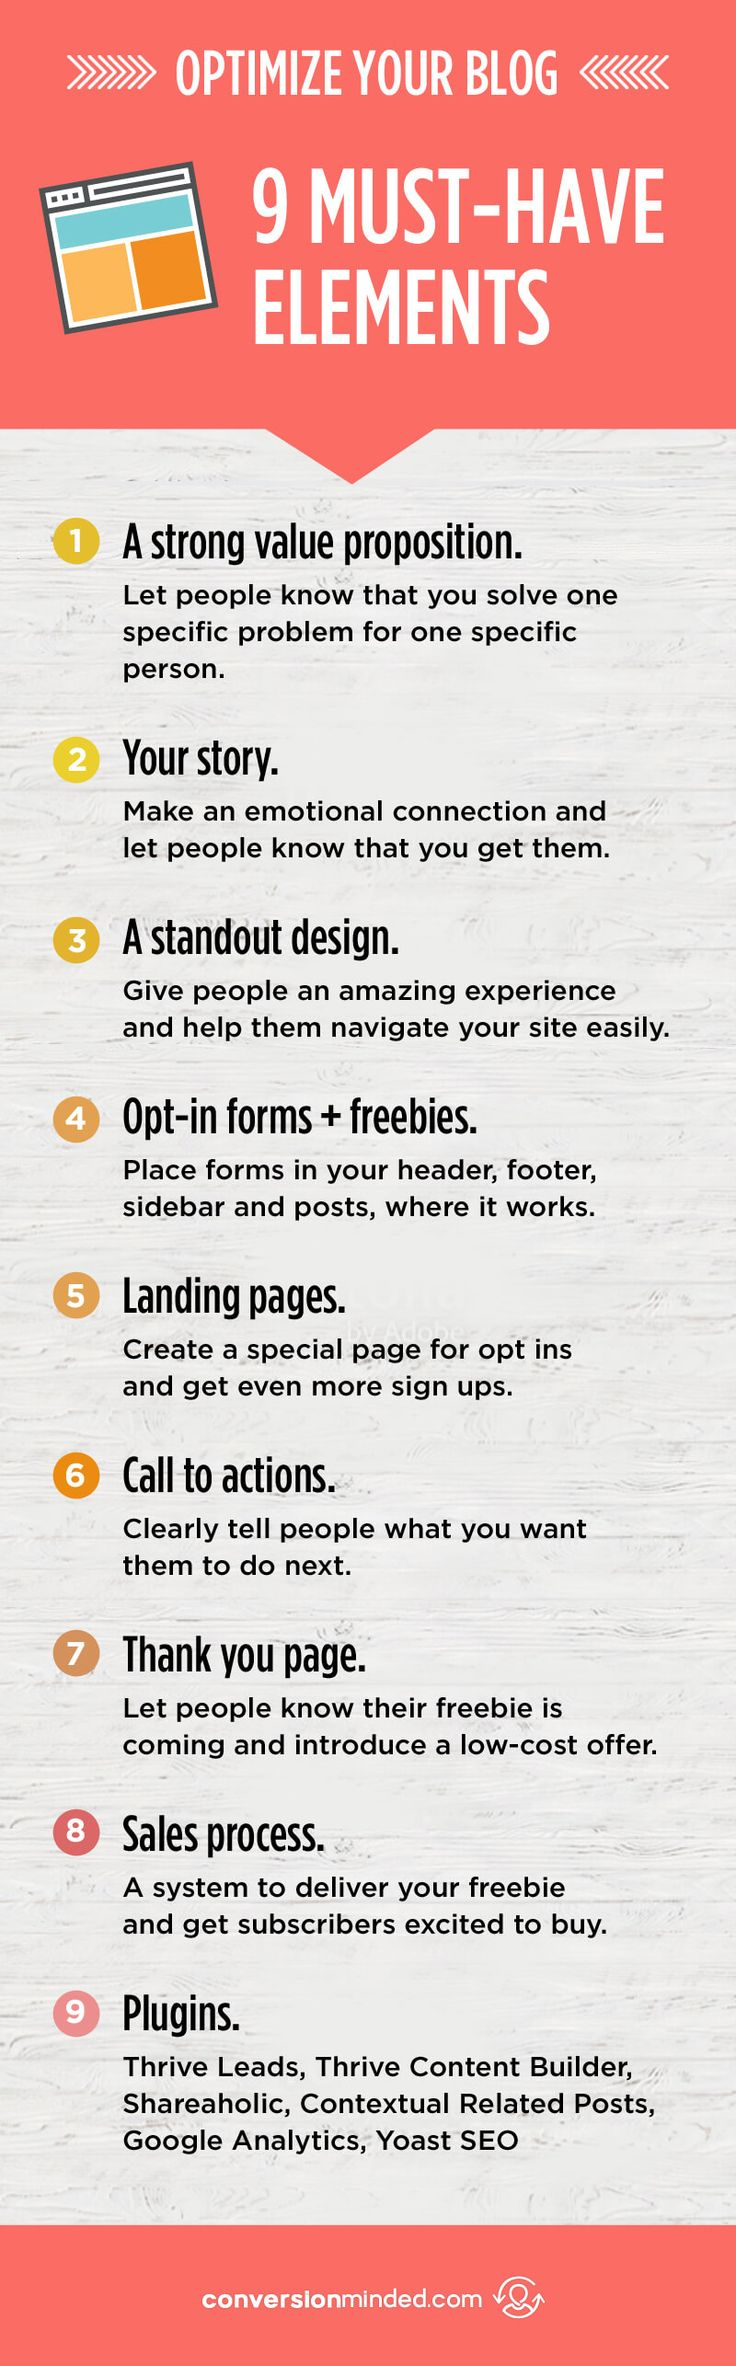 9 Steps to Optimize Your Website For More Traffic + Customers | Ever feel like your website should be working harder for you? This post is for you! It includes 9 elements every blogger and entrepreneur needs to get more customers and subscribers, even while you sleep. Click through to see!